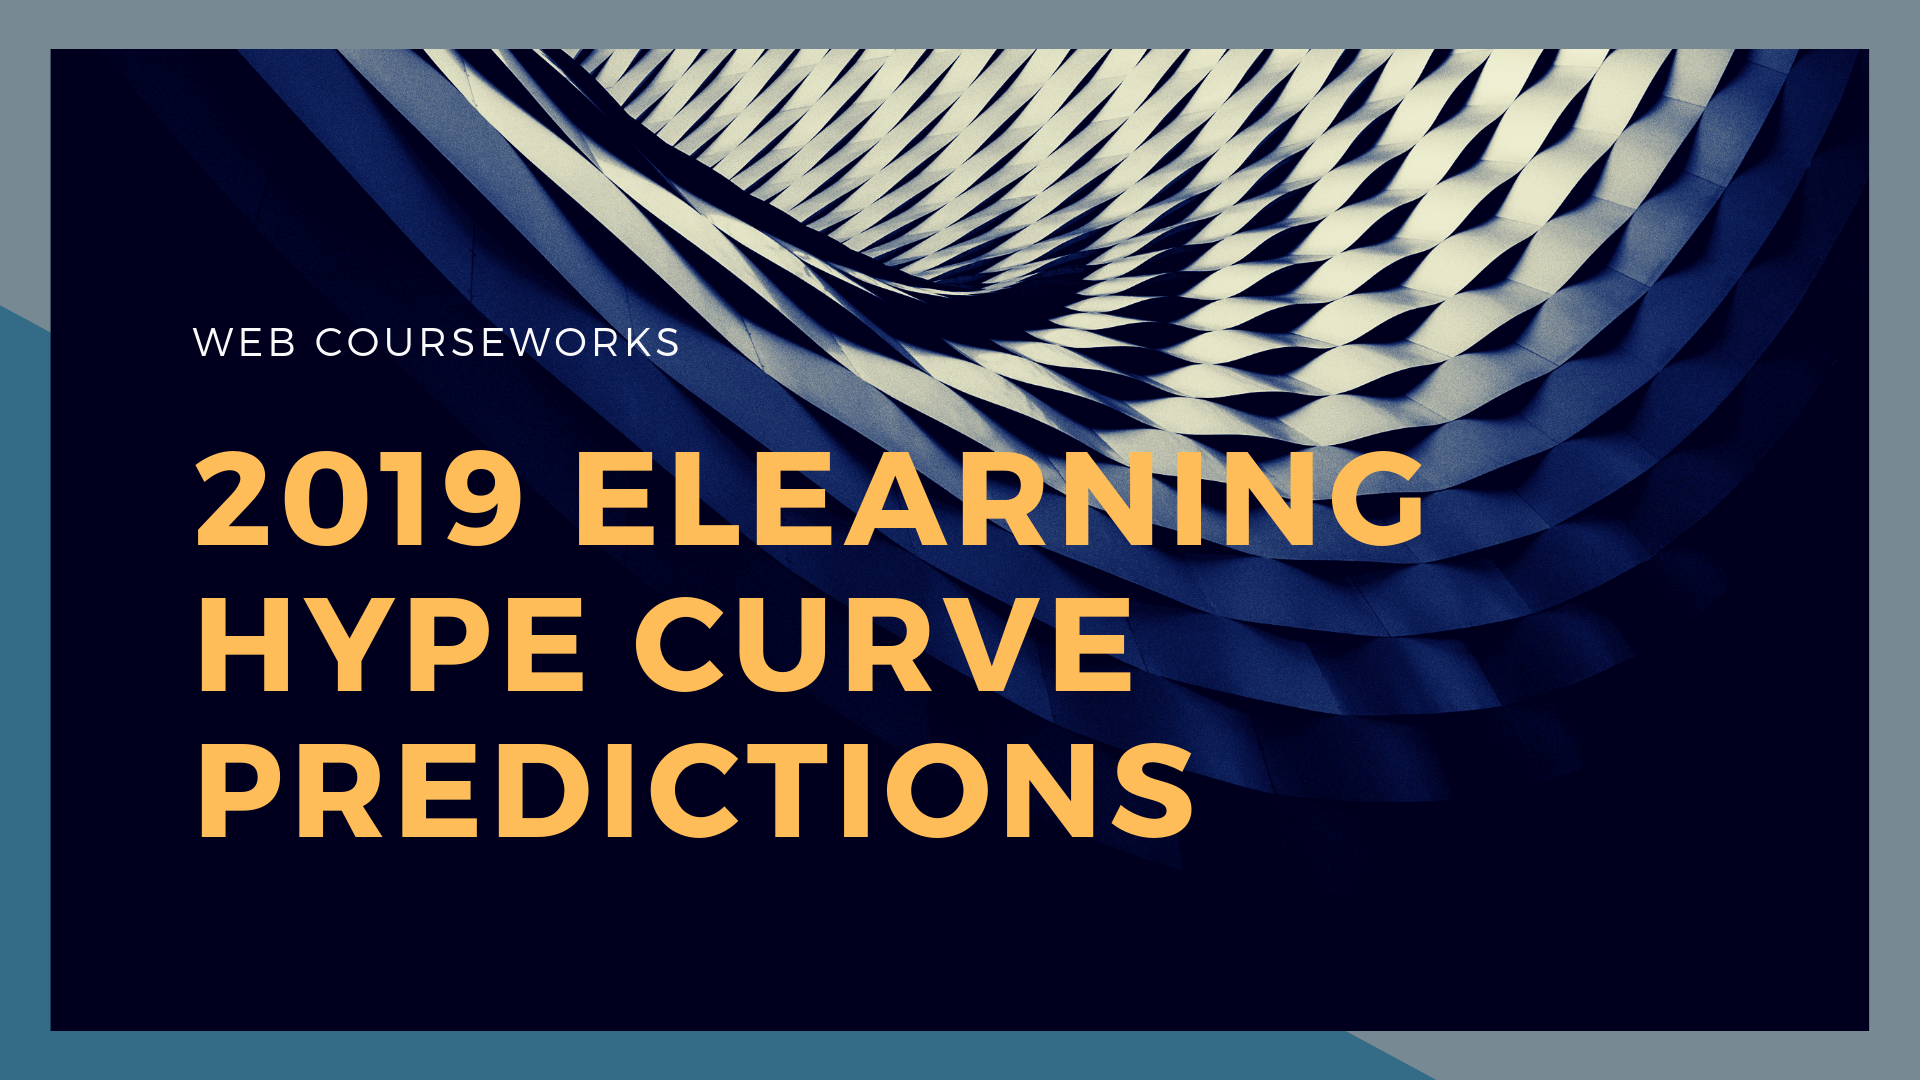 ELearning Hype Curve: Our Predictions For 2019